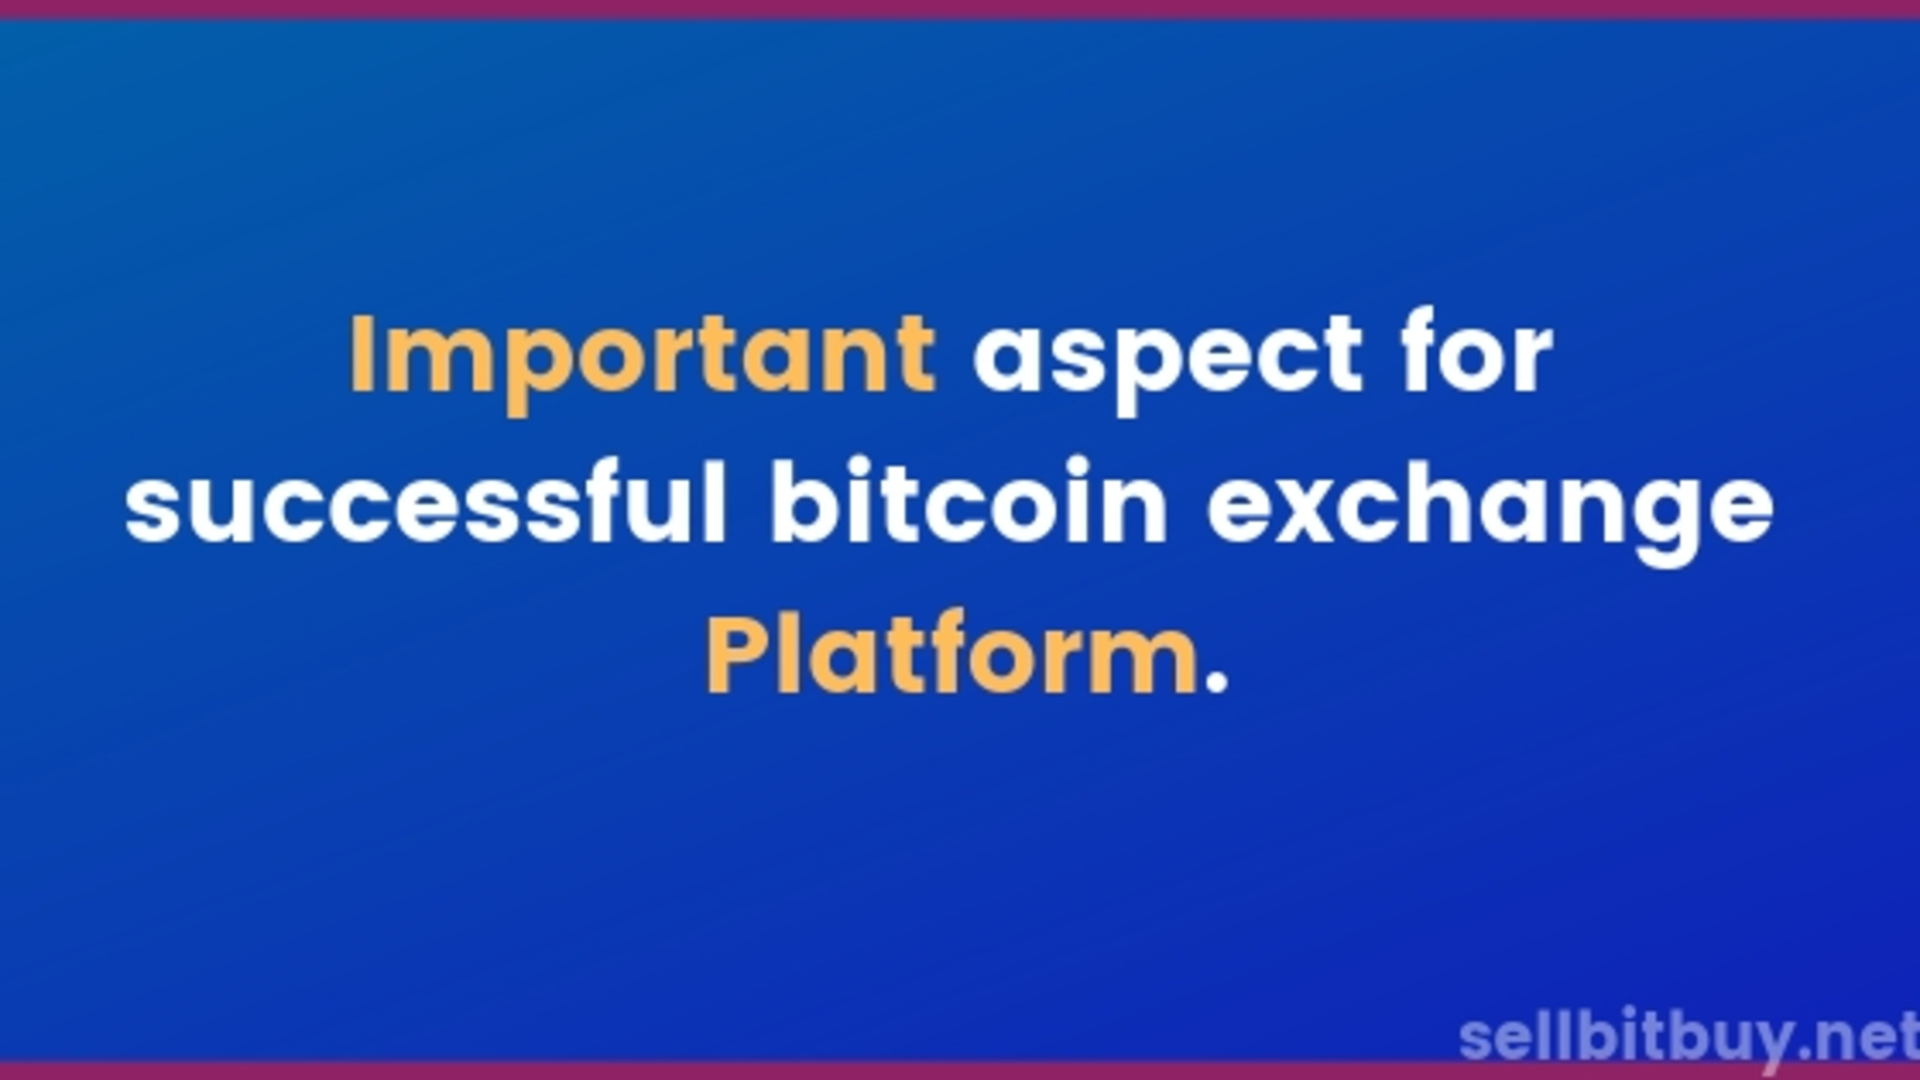 The important aspect for successful bitcoin exchange platform. image